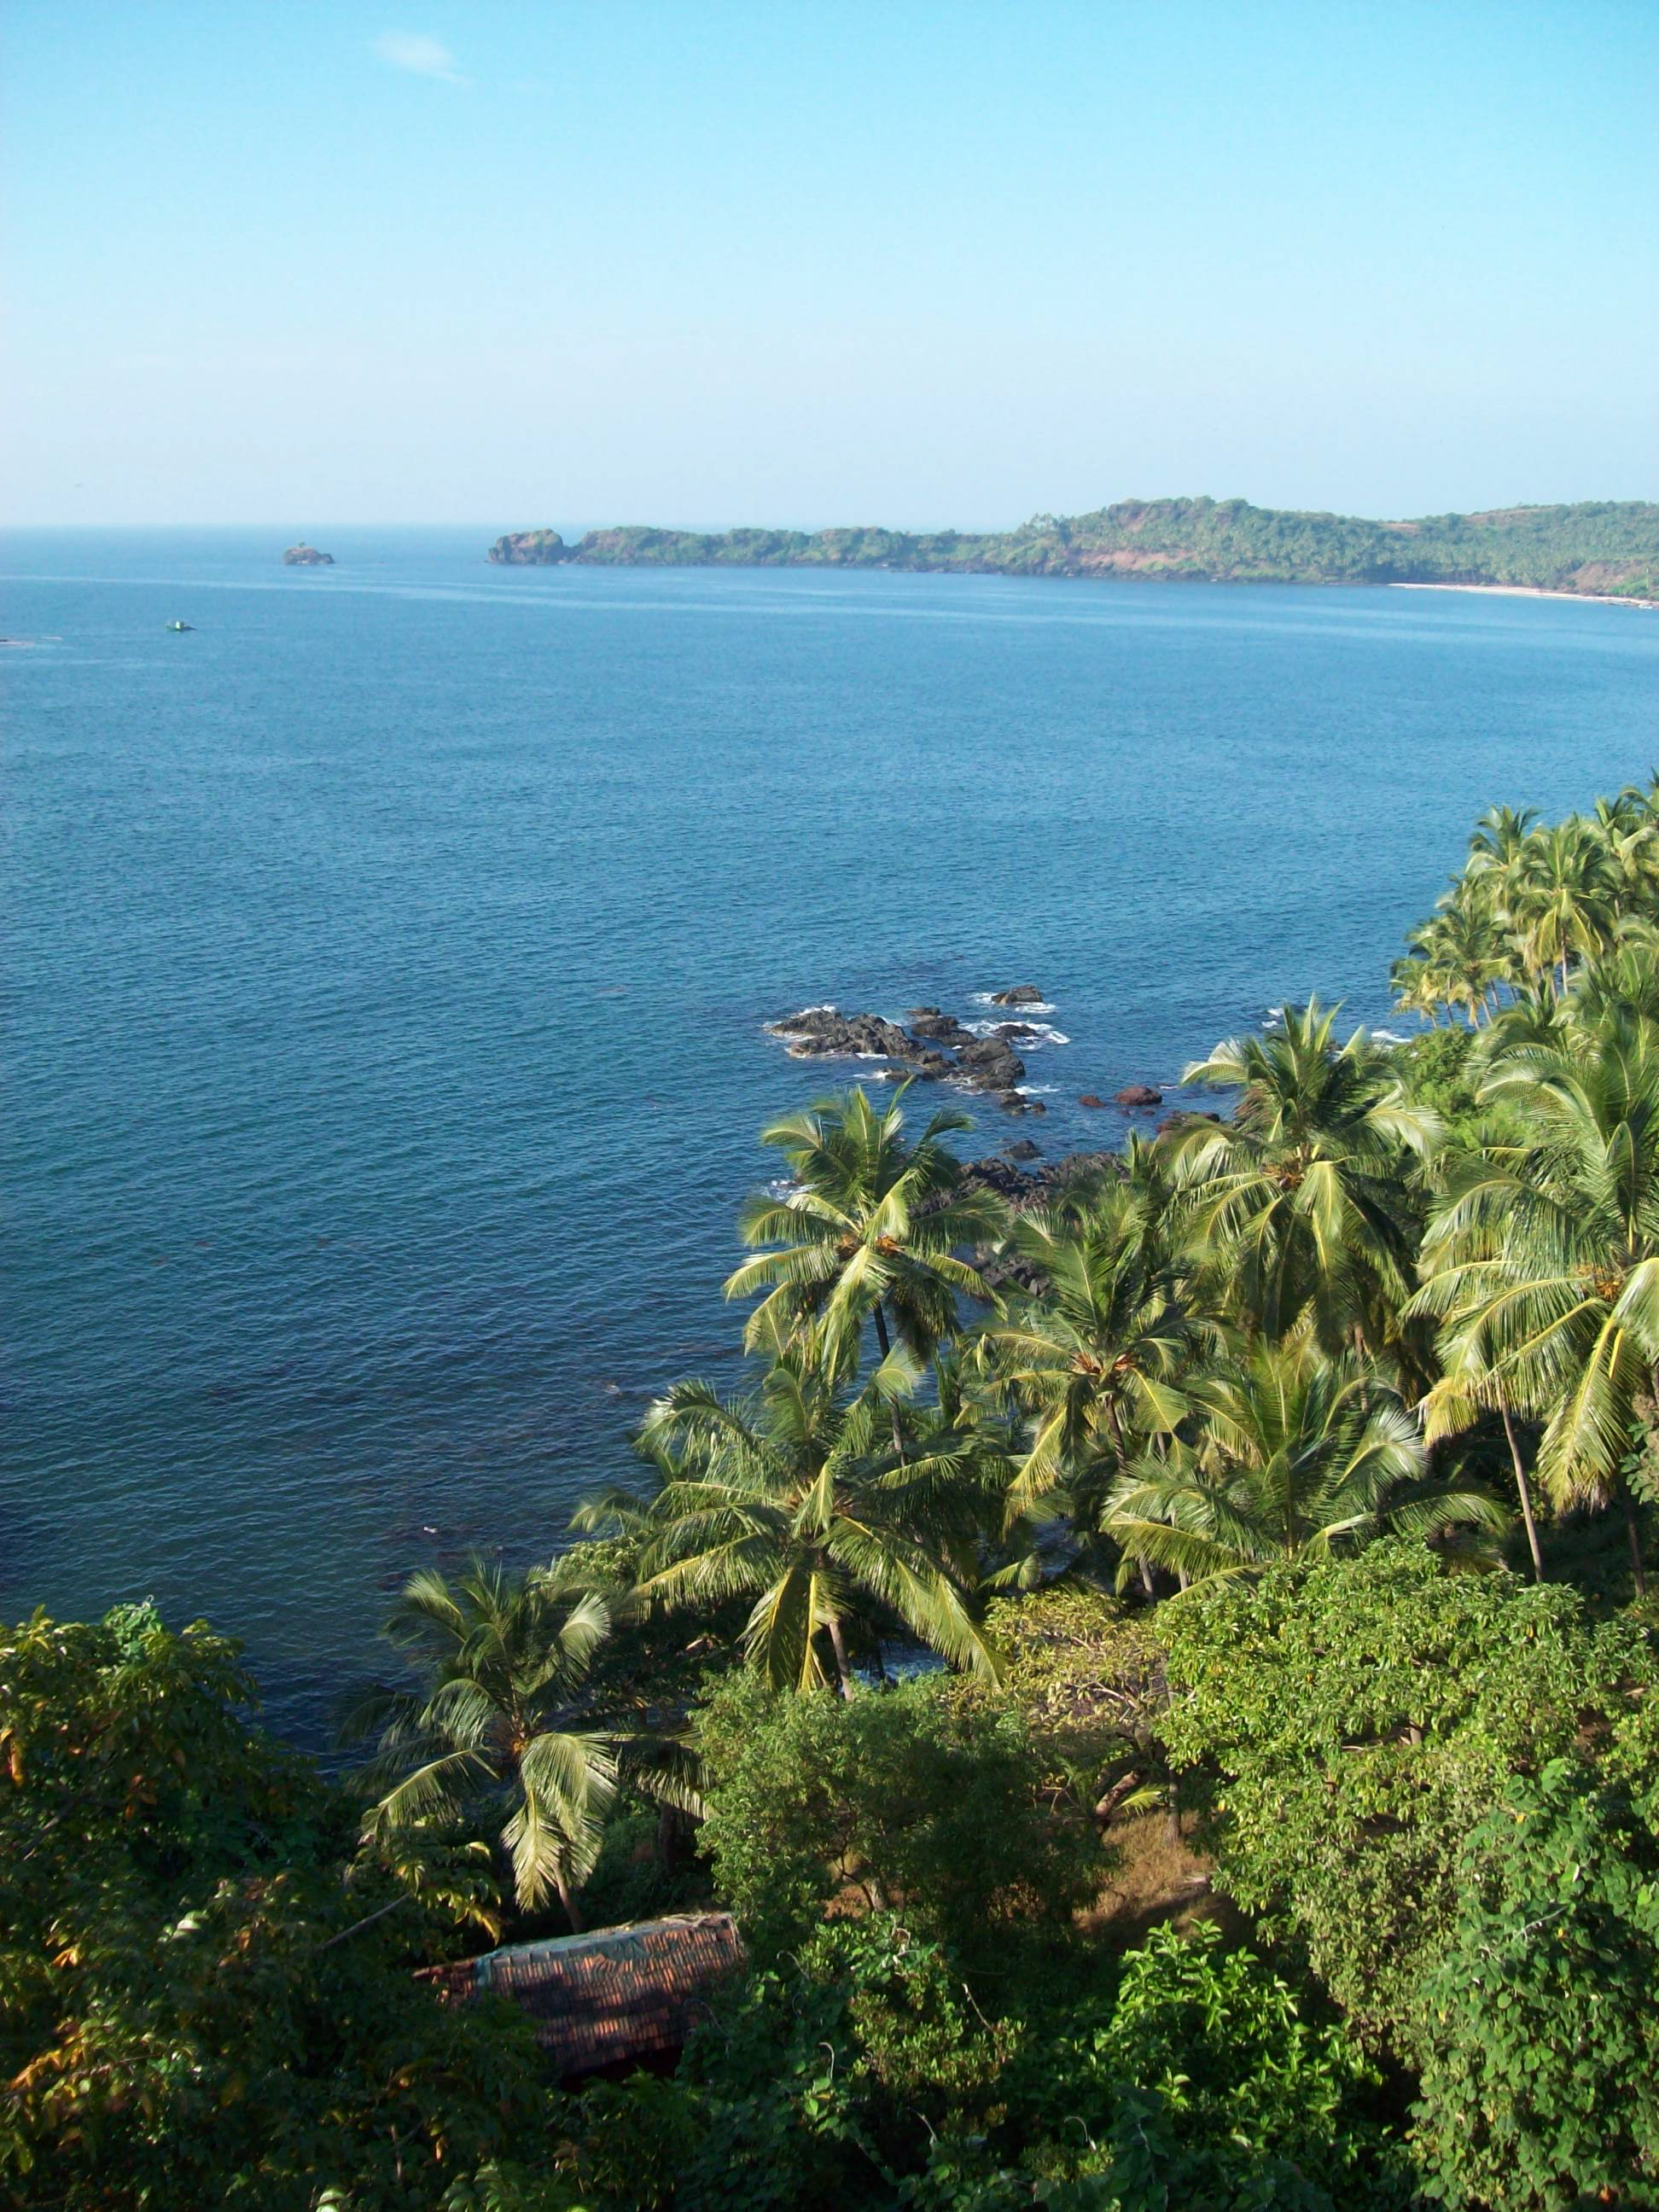 Tropical trees along the Indian coast